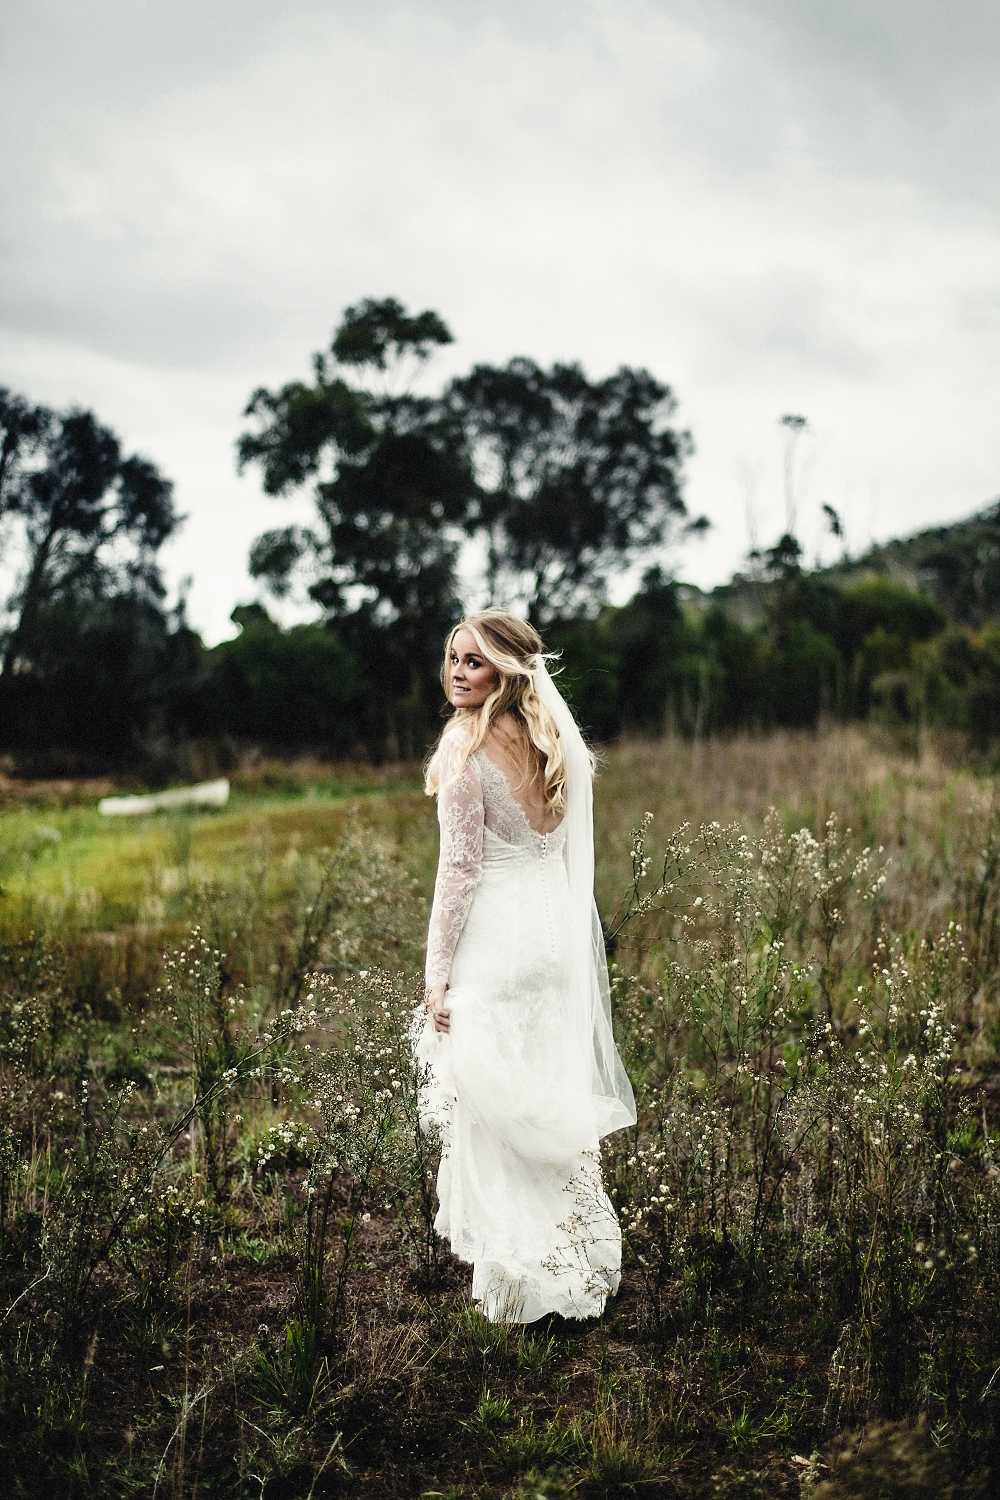 Squarespace_Wedding_Folio-LR-054AE.jpg